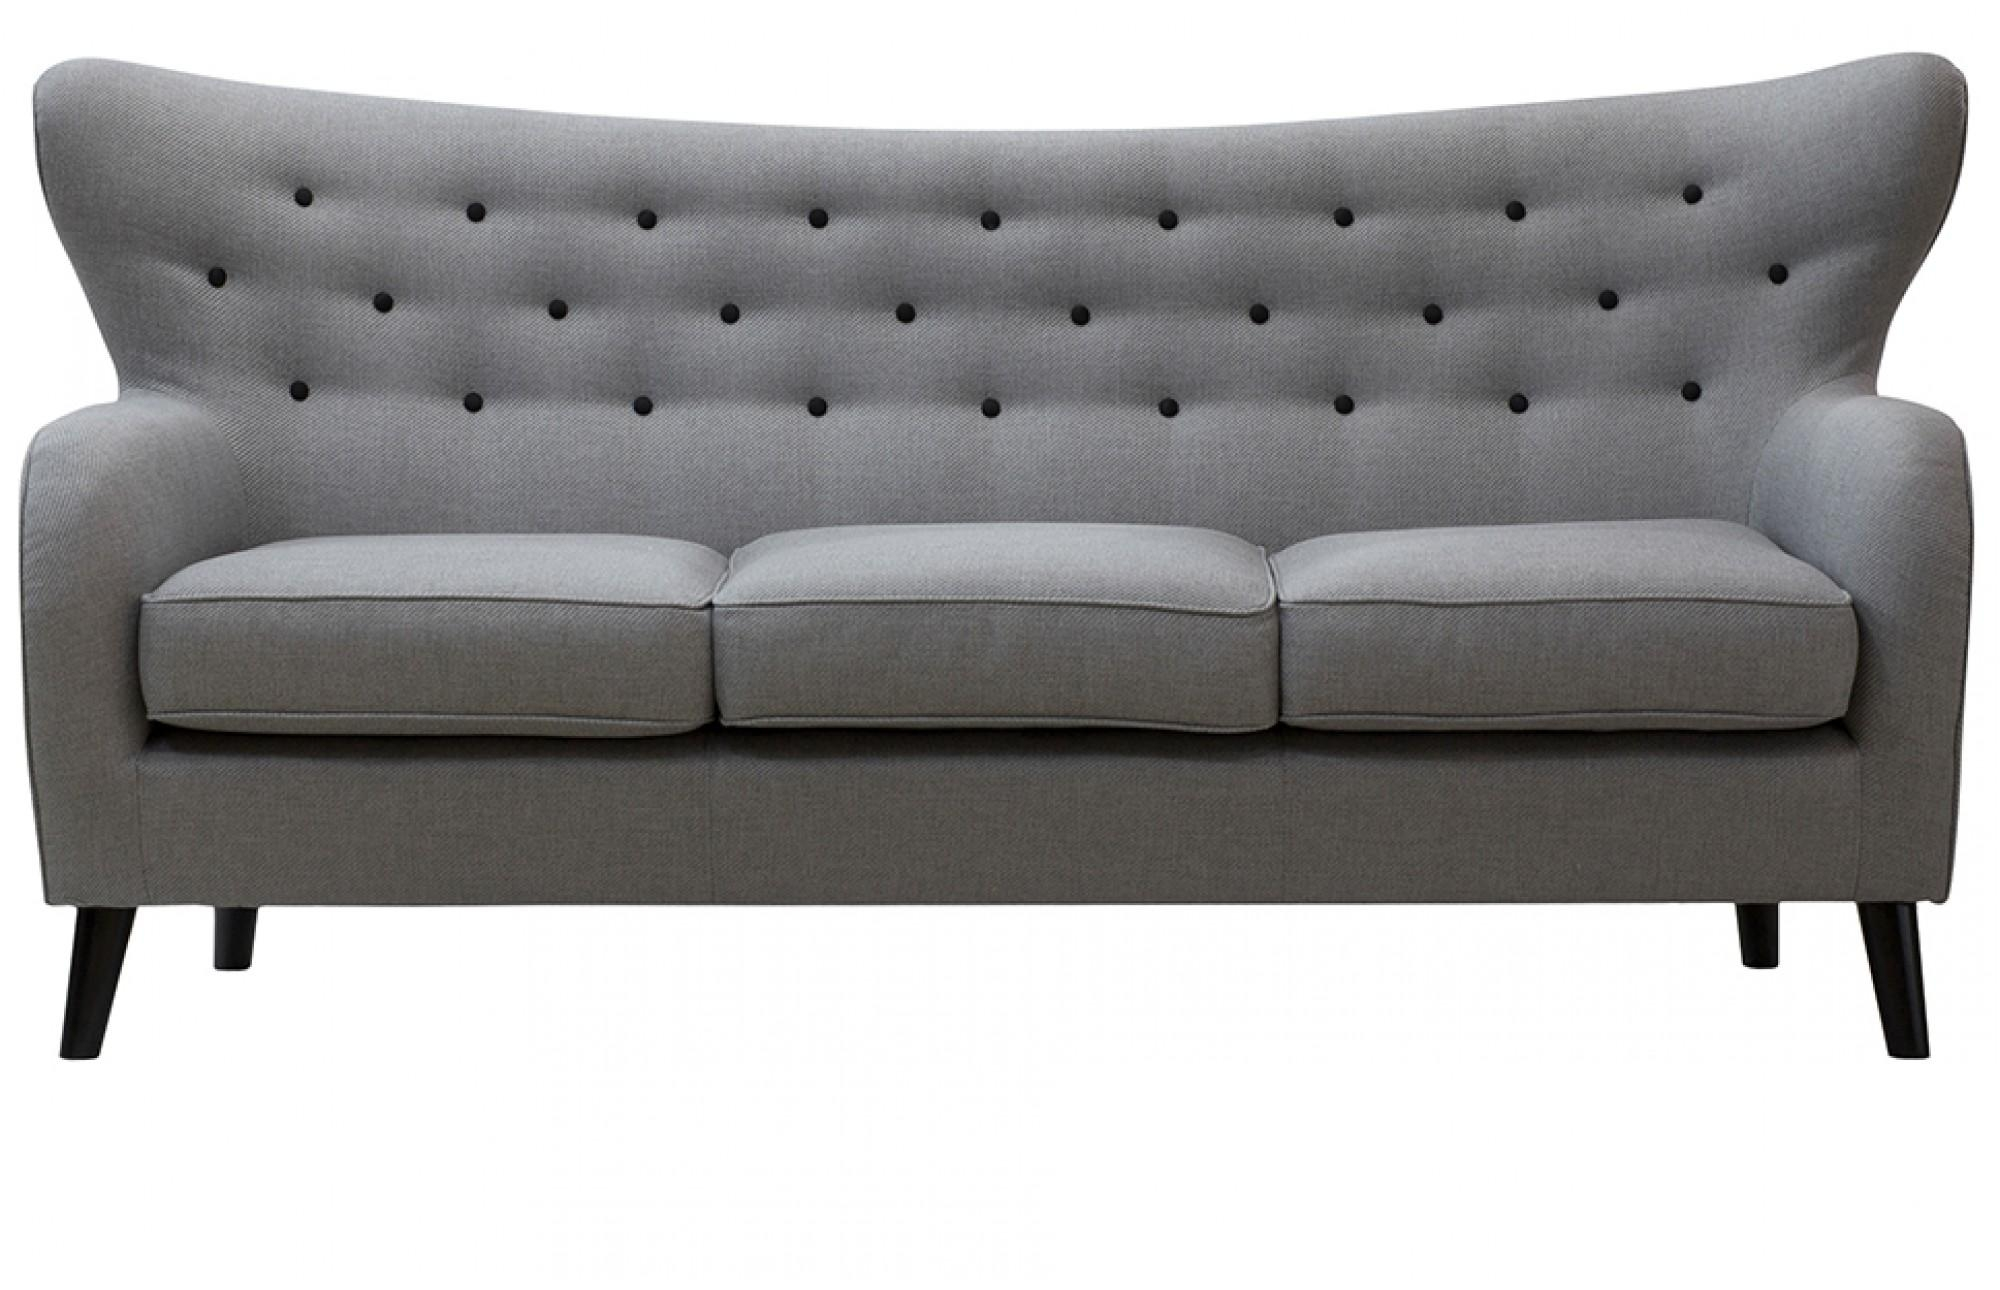 3 Seater Sofas Throughout Three Seater Sofas (Image 2 of 20)